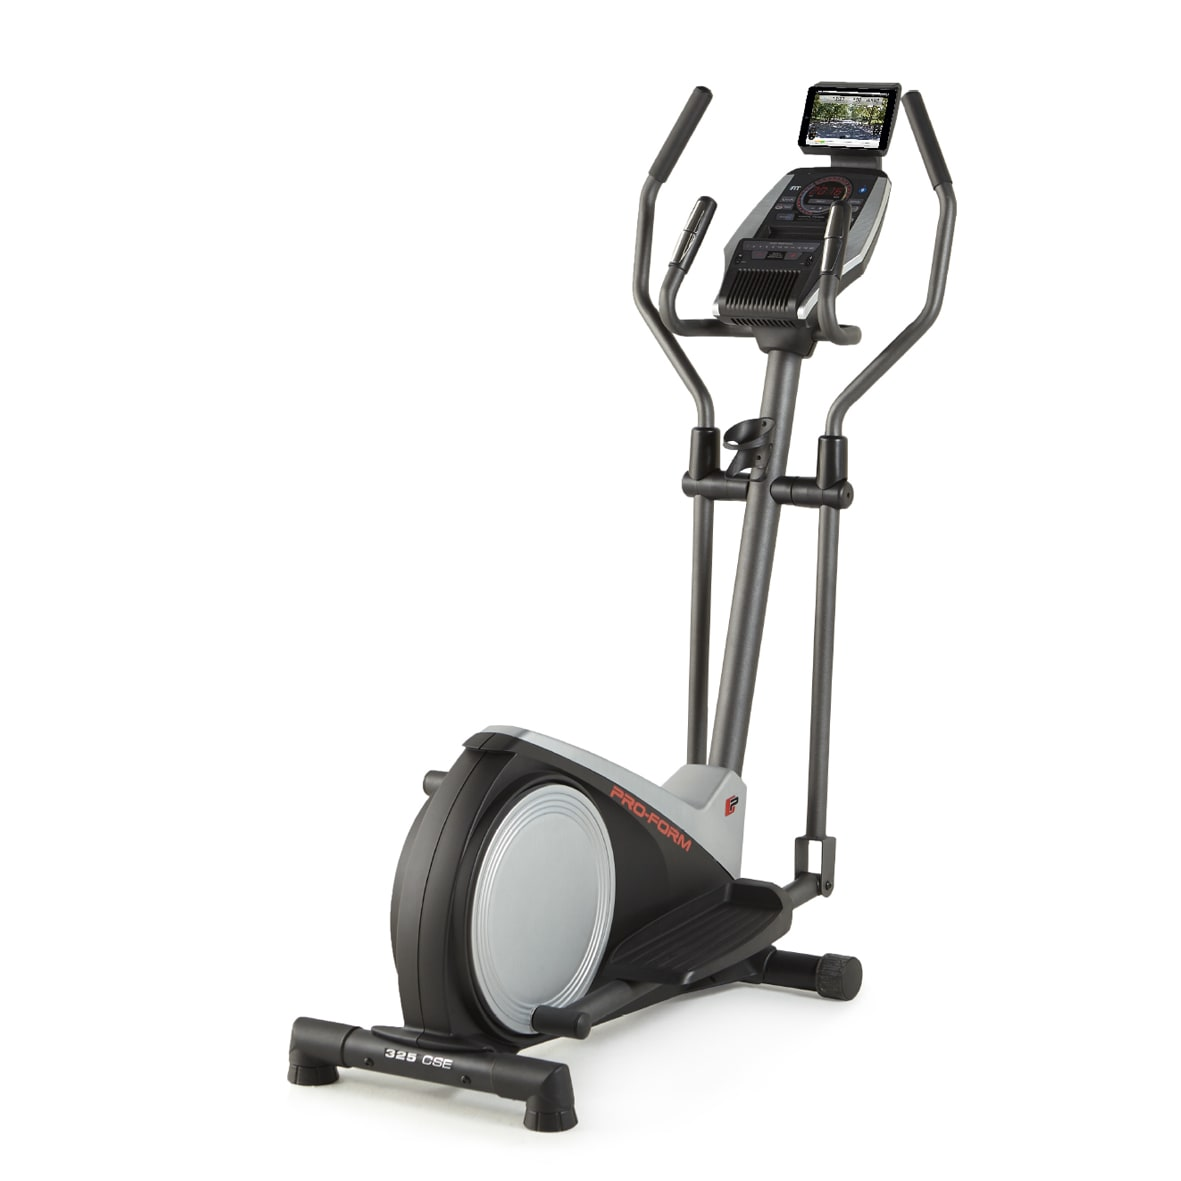 ProForm 325 CSE Ellipticals